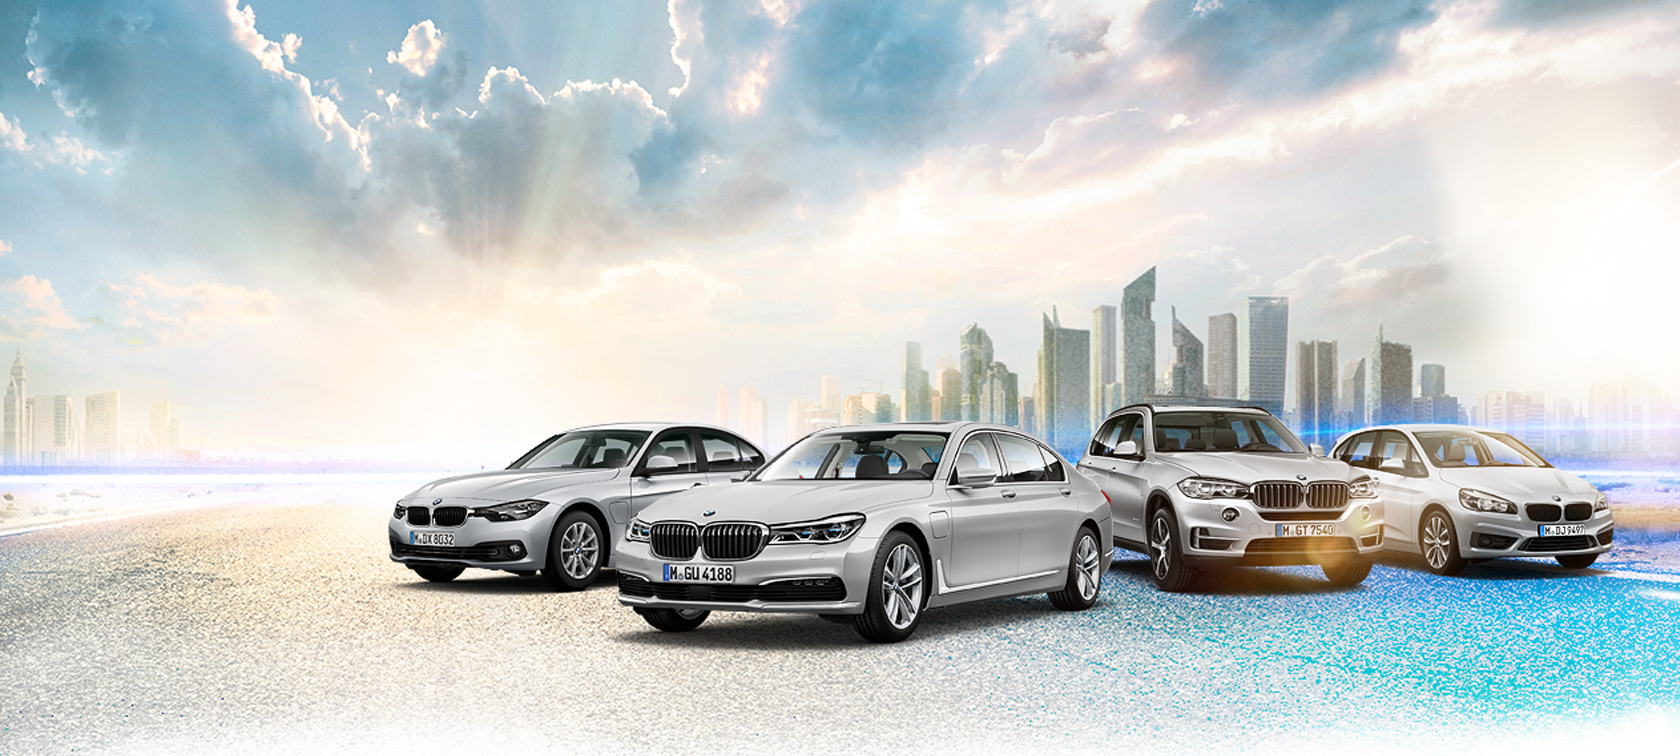 All models with BMW eDrive